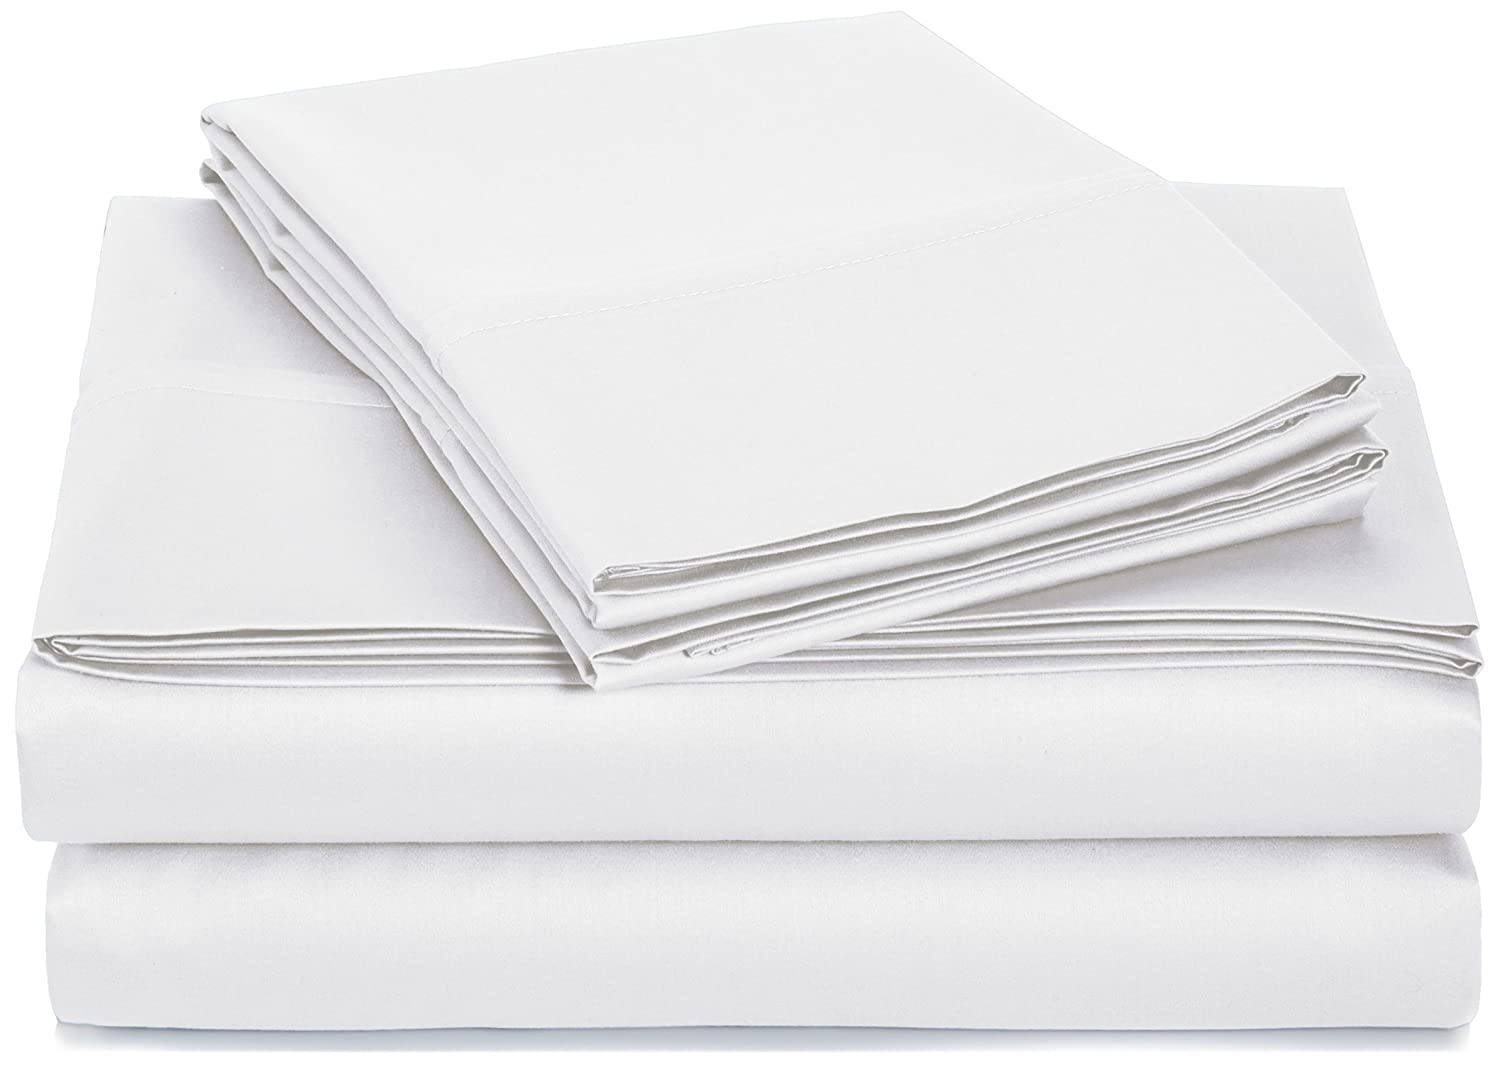 AmazonBasics 400 Thread Count Sheet Set, 100% Cotton, Sateen Finish - Queen, White